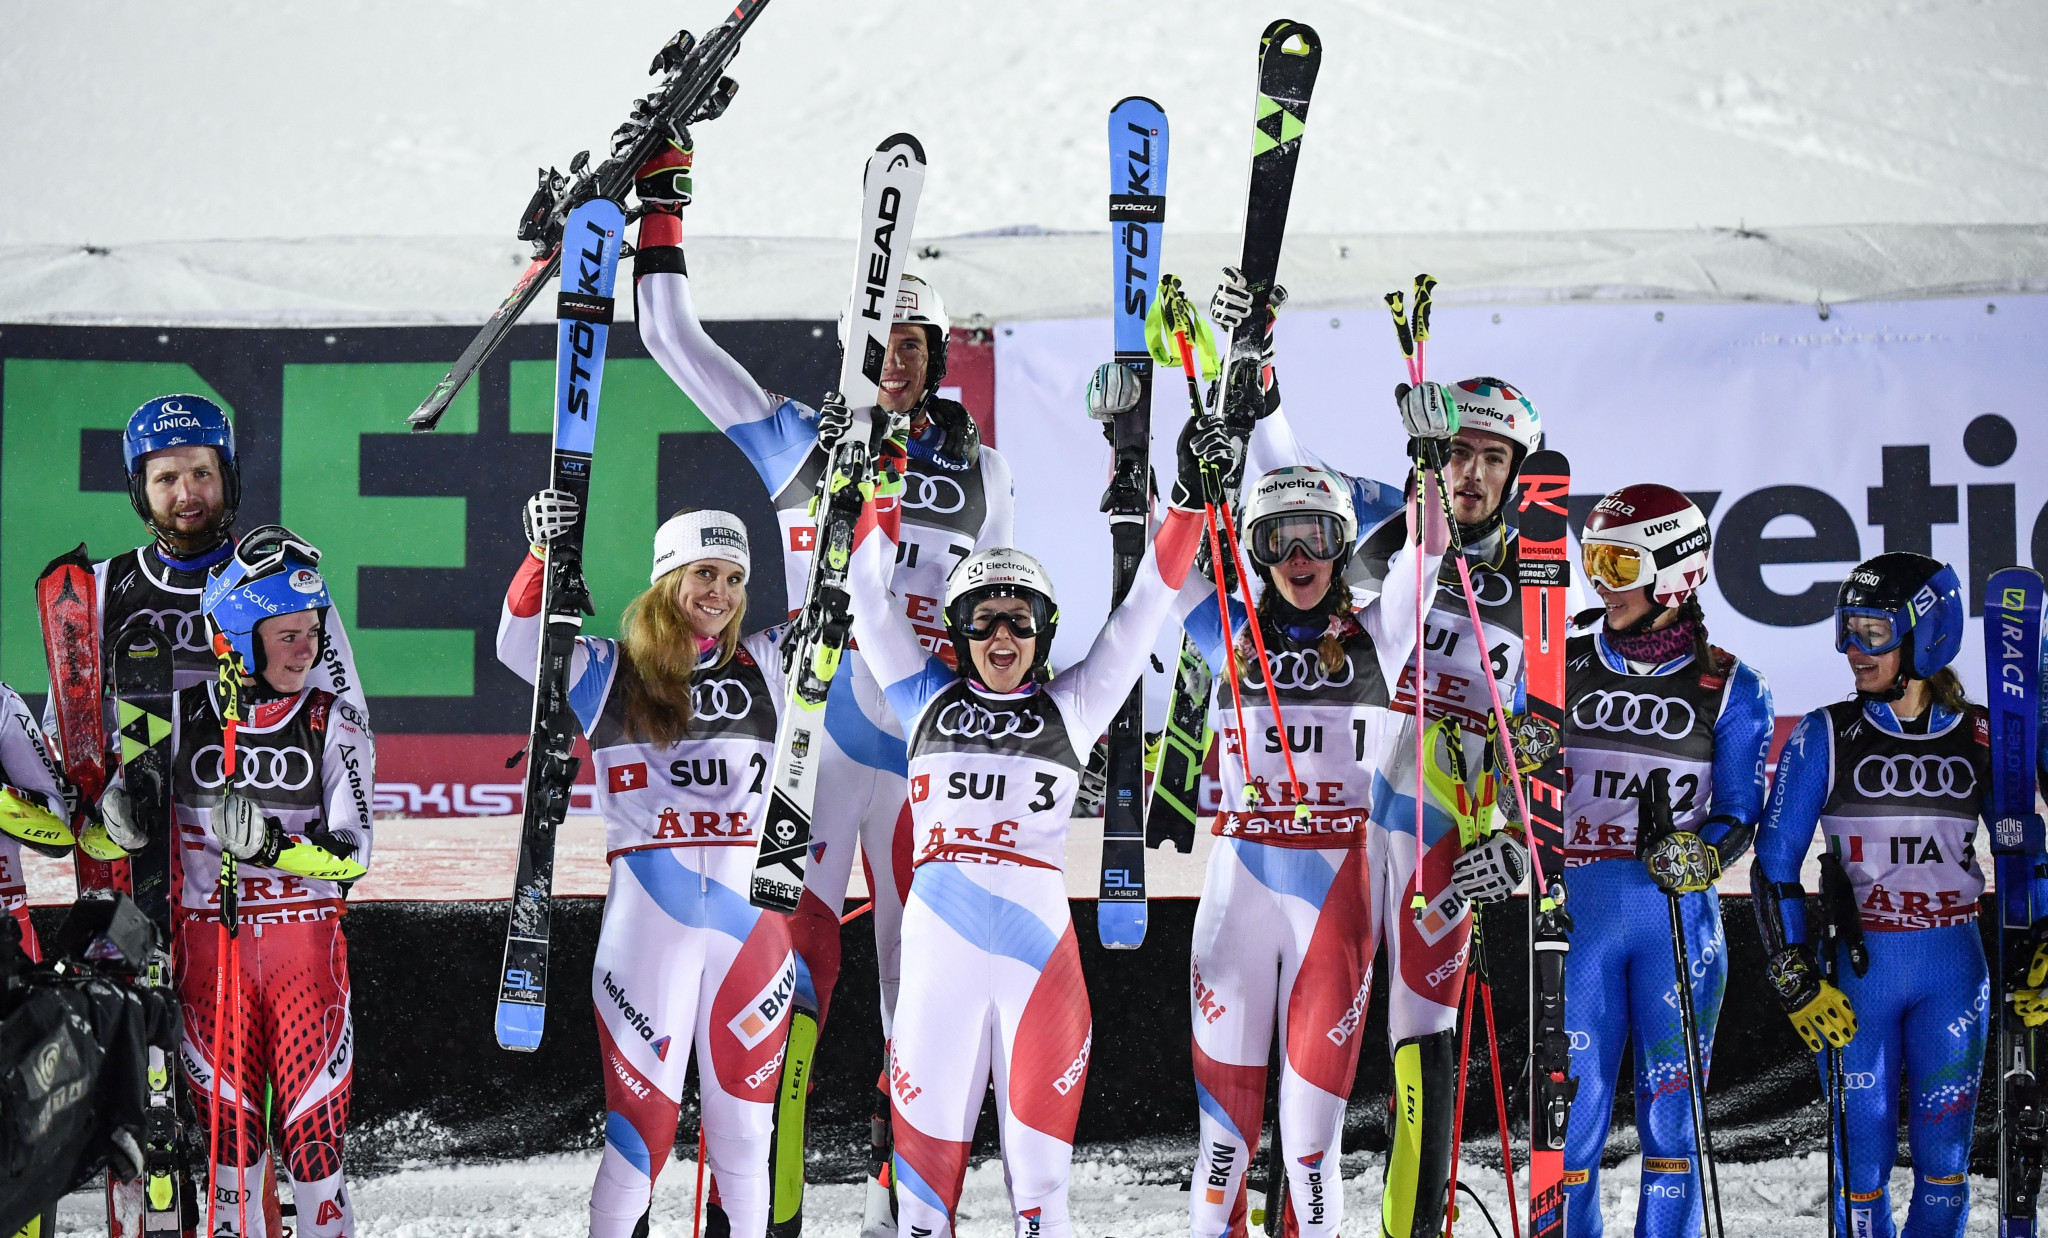 Switzerland won the mixed team event at the Alpine Skiing World Championships ©Getty Images